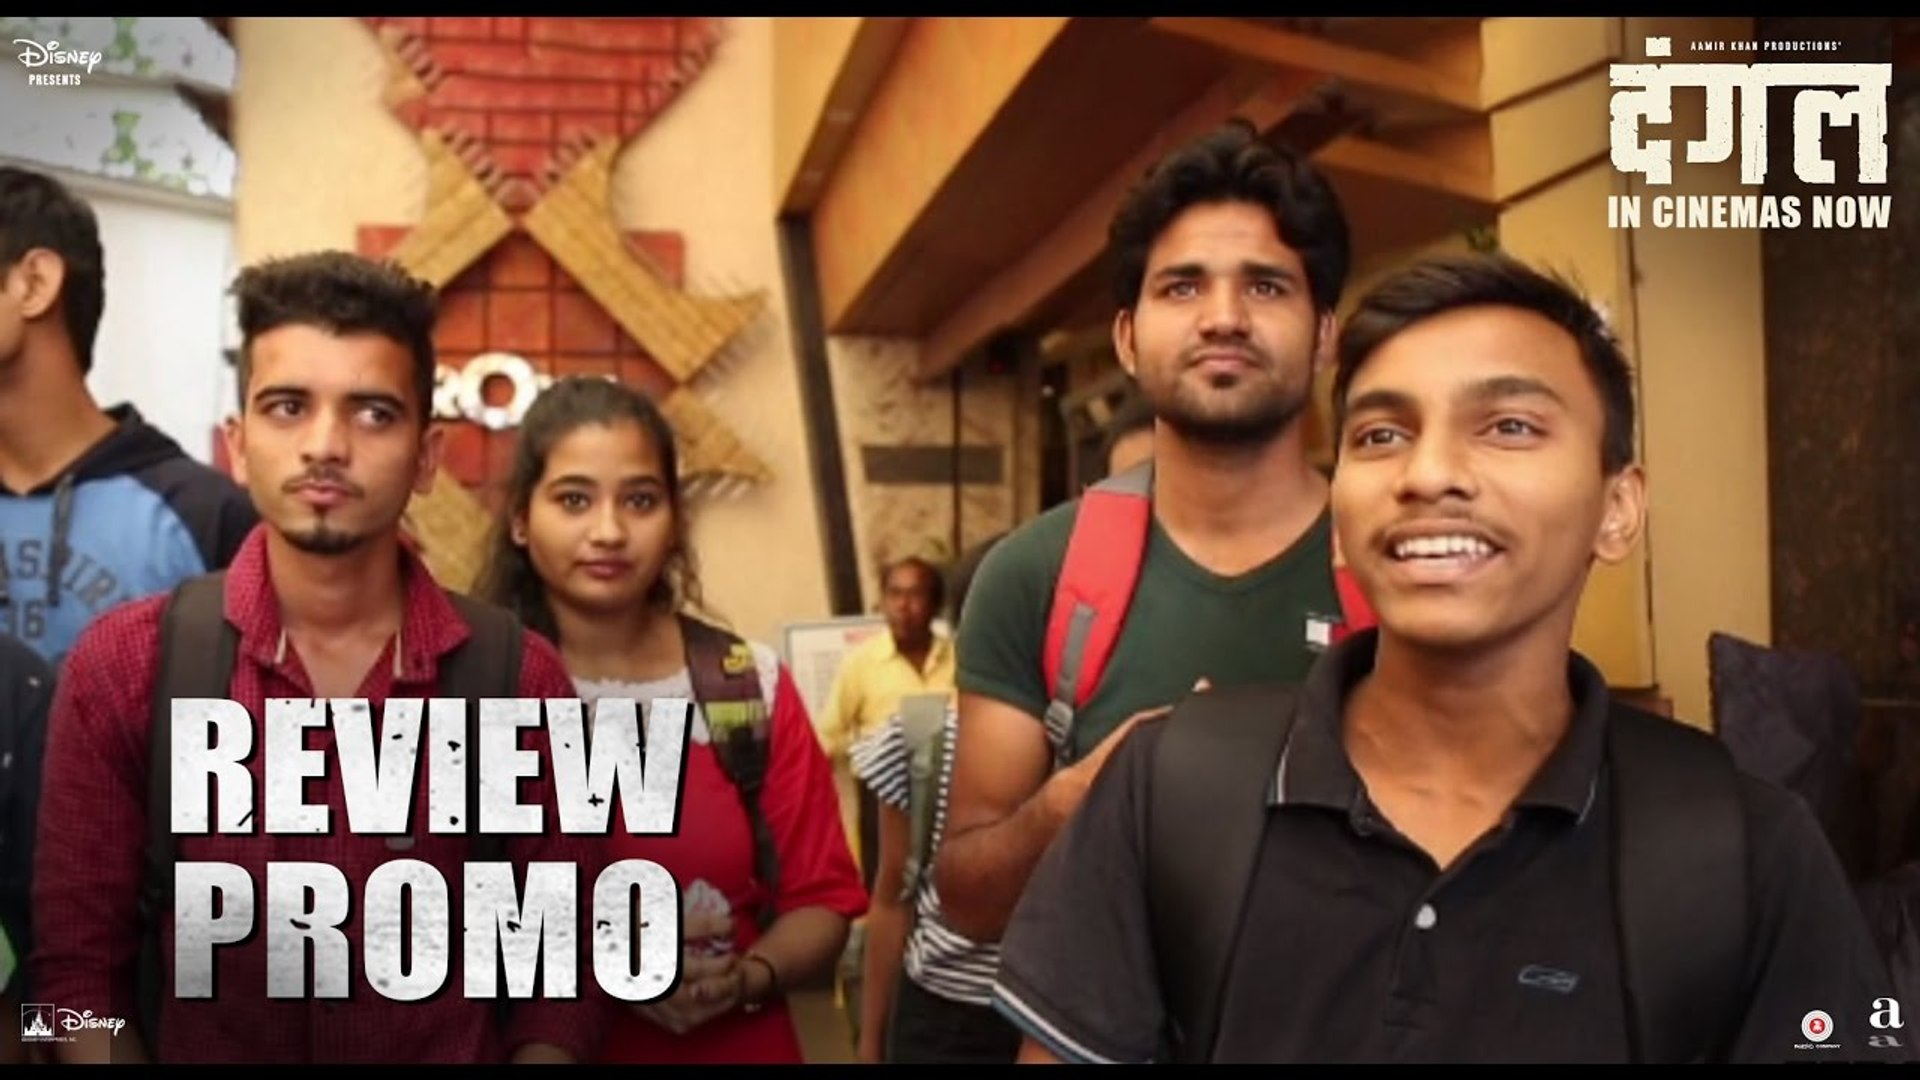 Dangal - Audience Review Promo - In Cinemas Now - YouTube